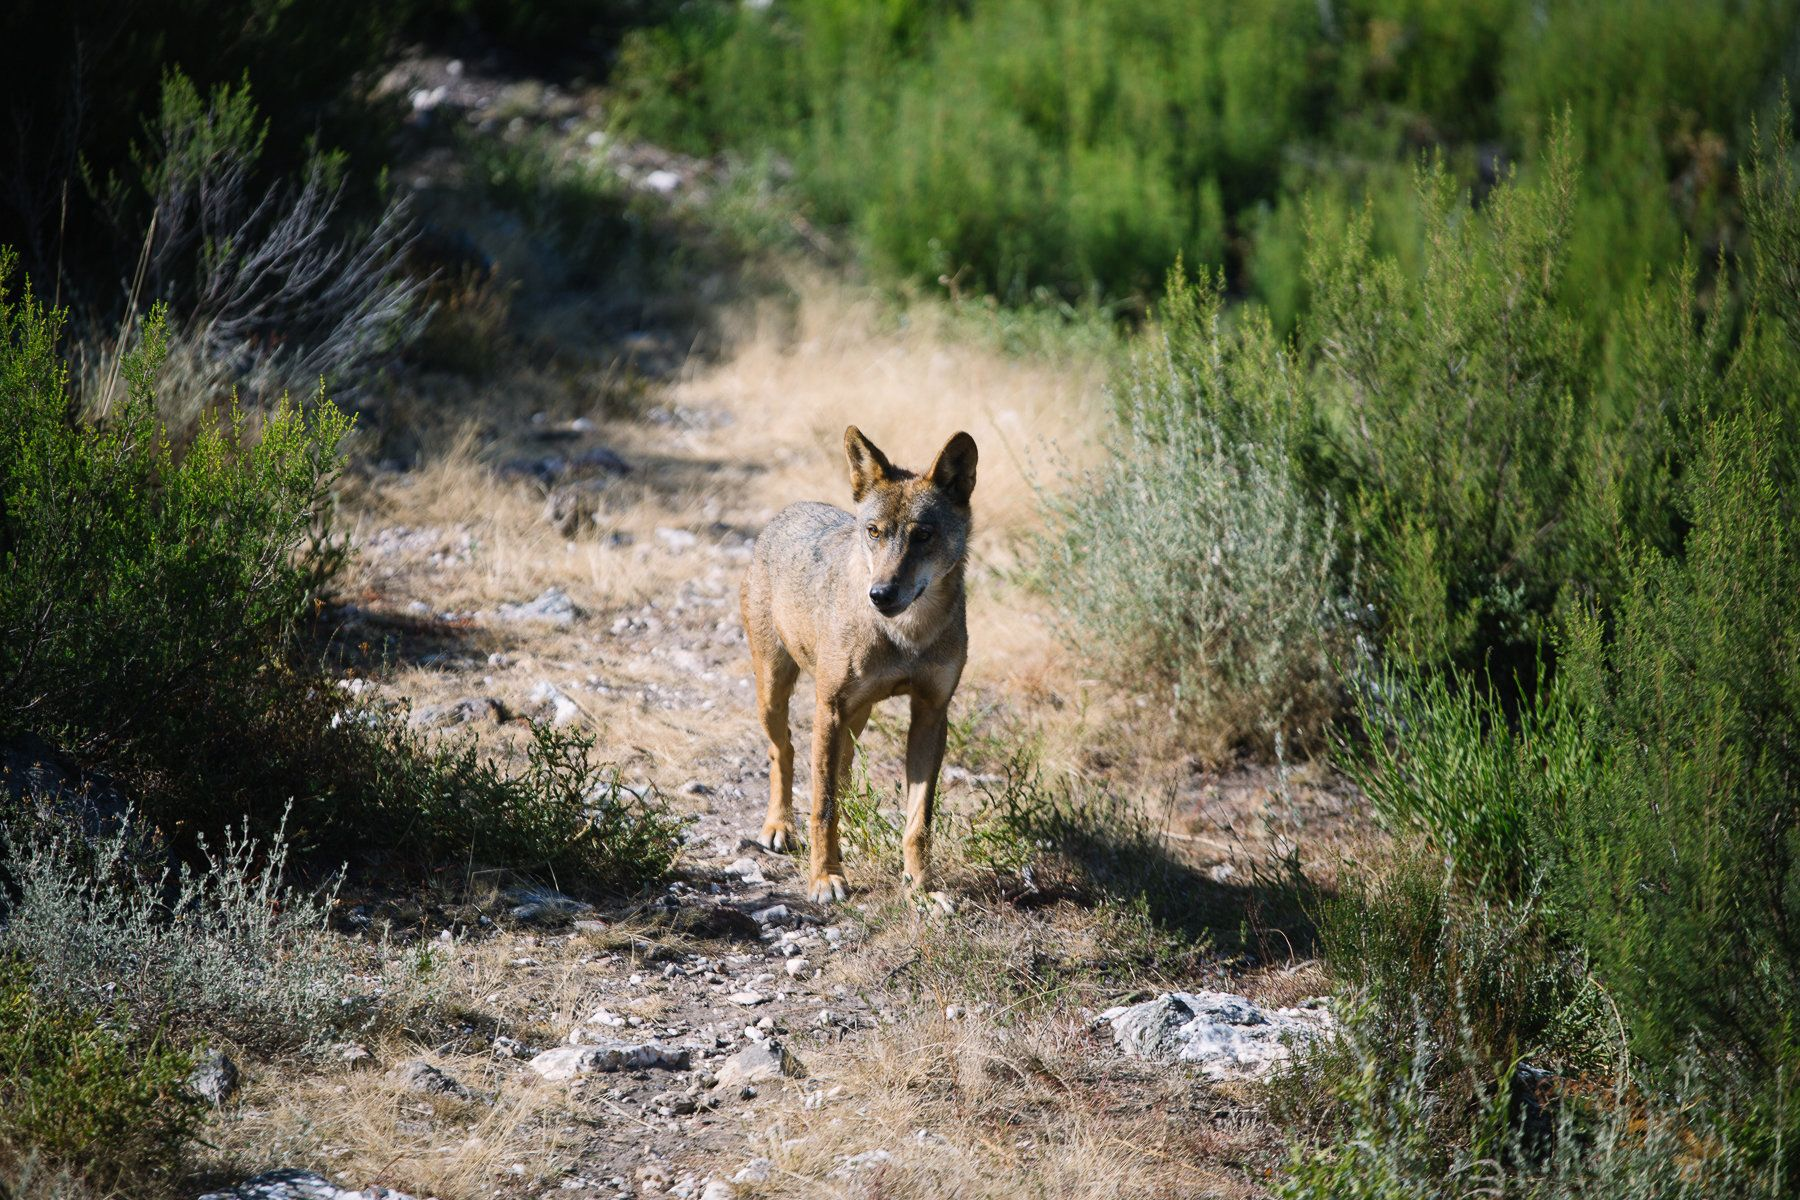 Wolves may be the traditional enemy to many in Spain, especially farmers, but attitudes are changing.